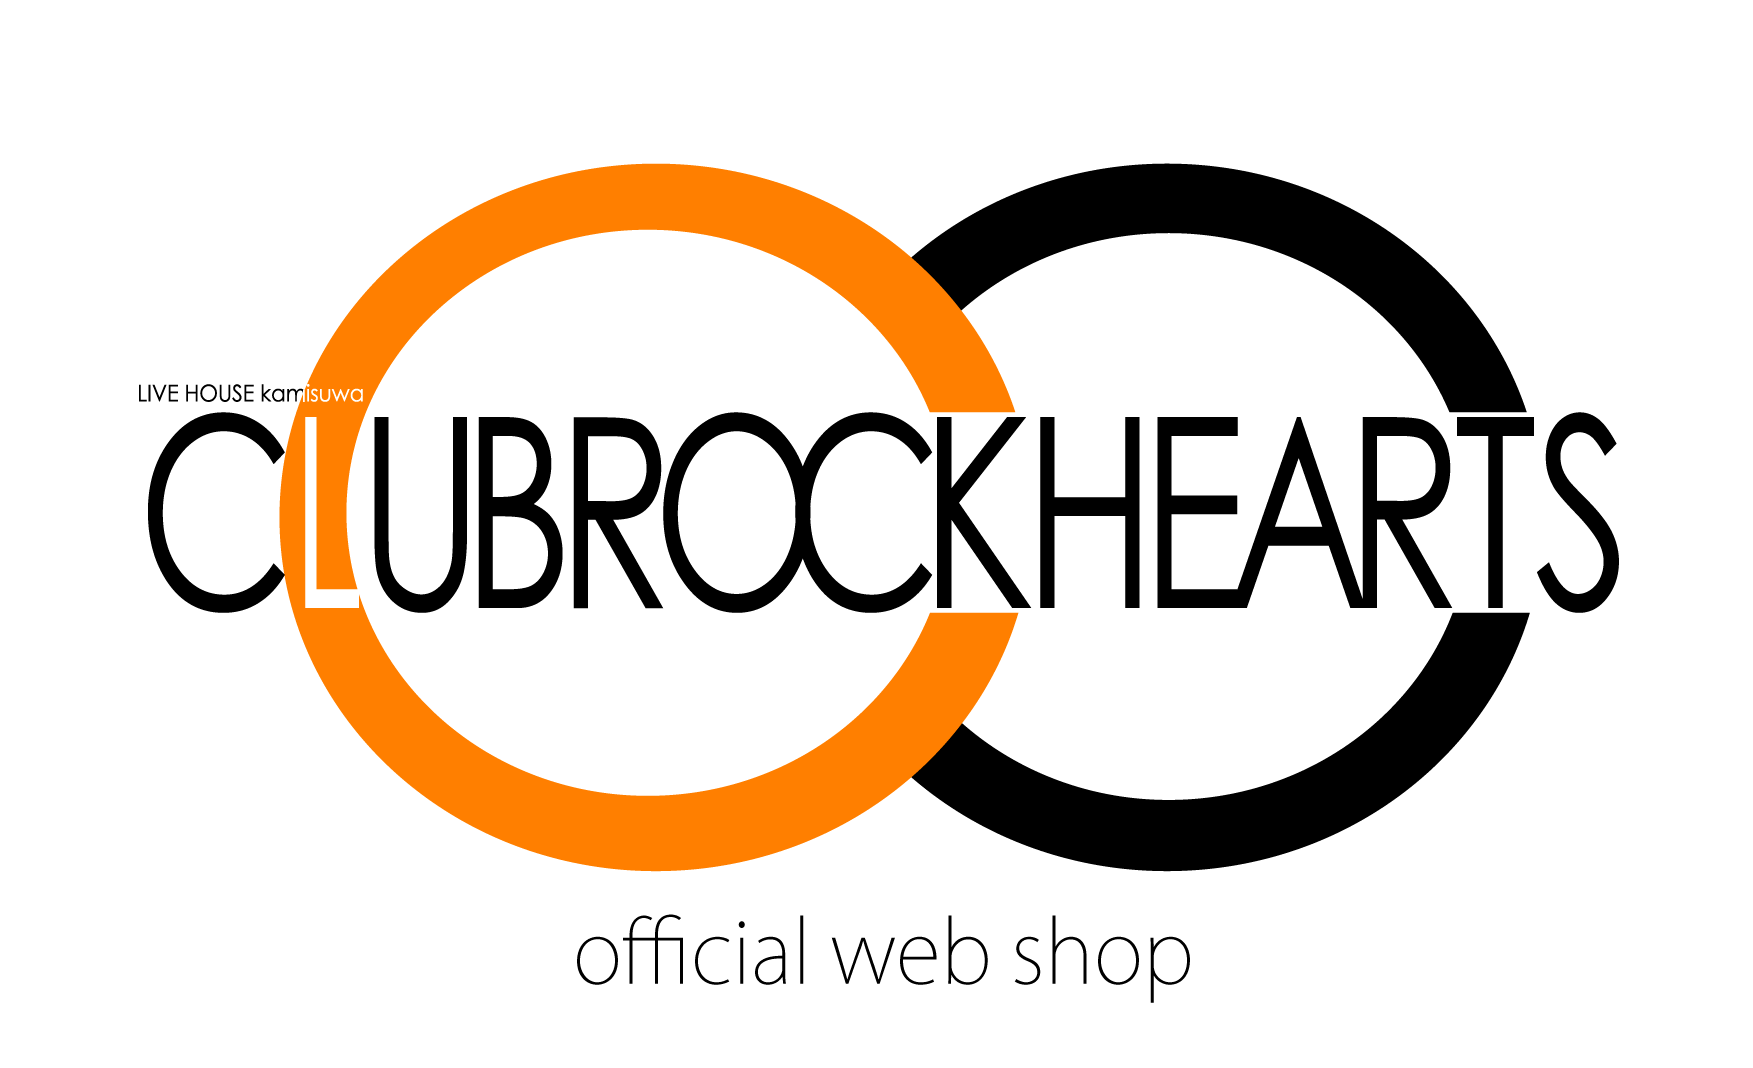 CLUBROCKHEARTS official webshop